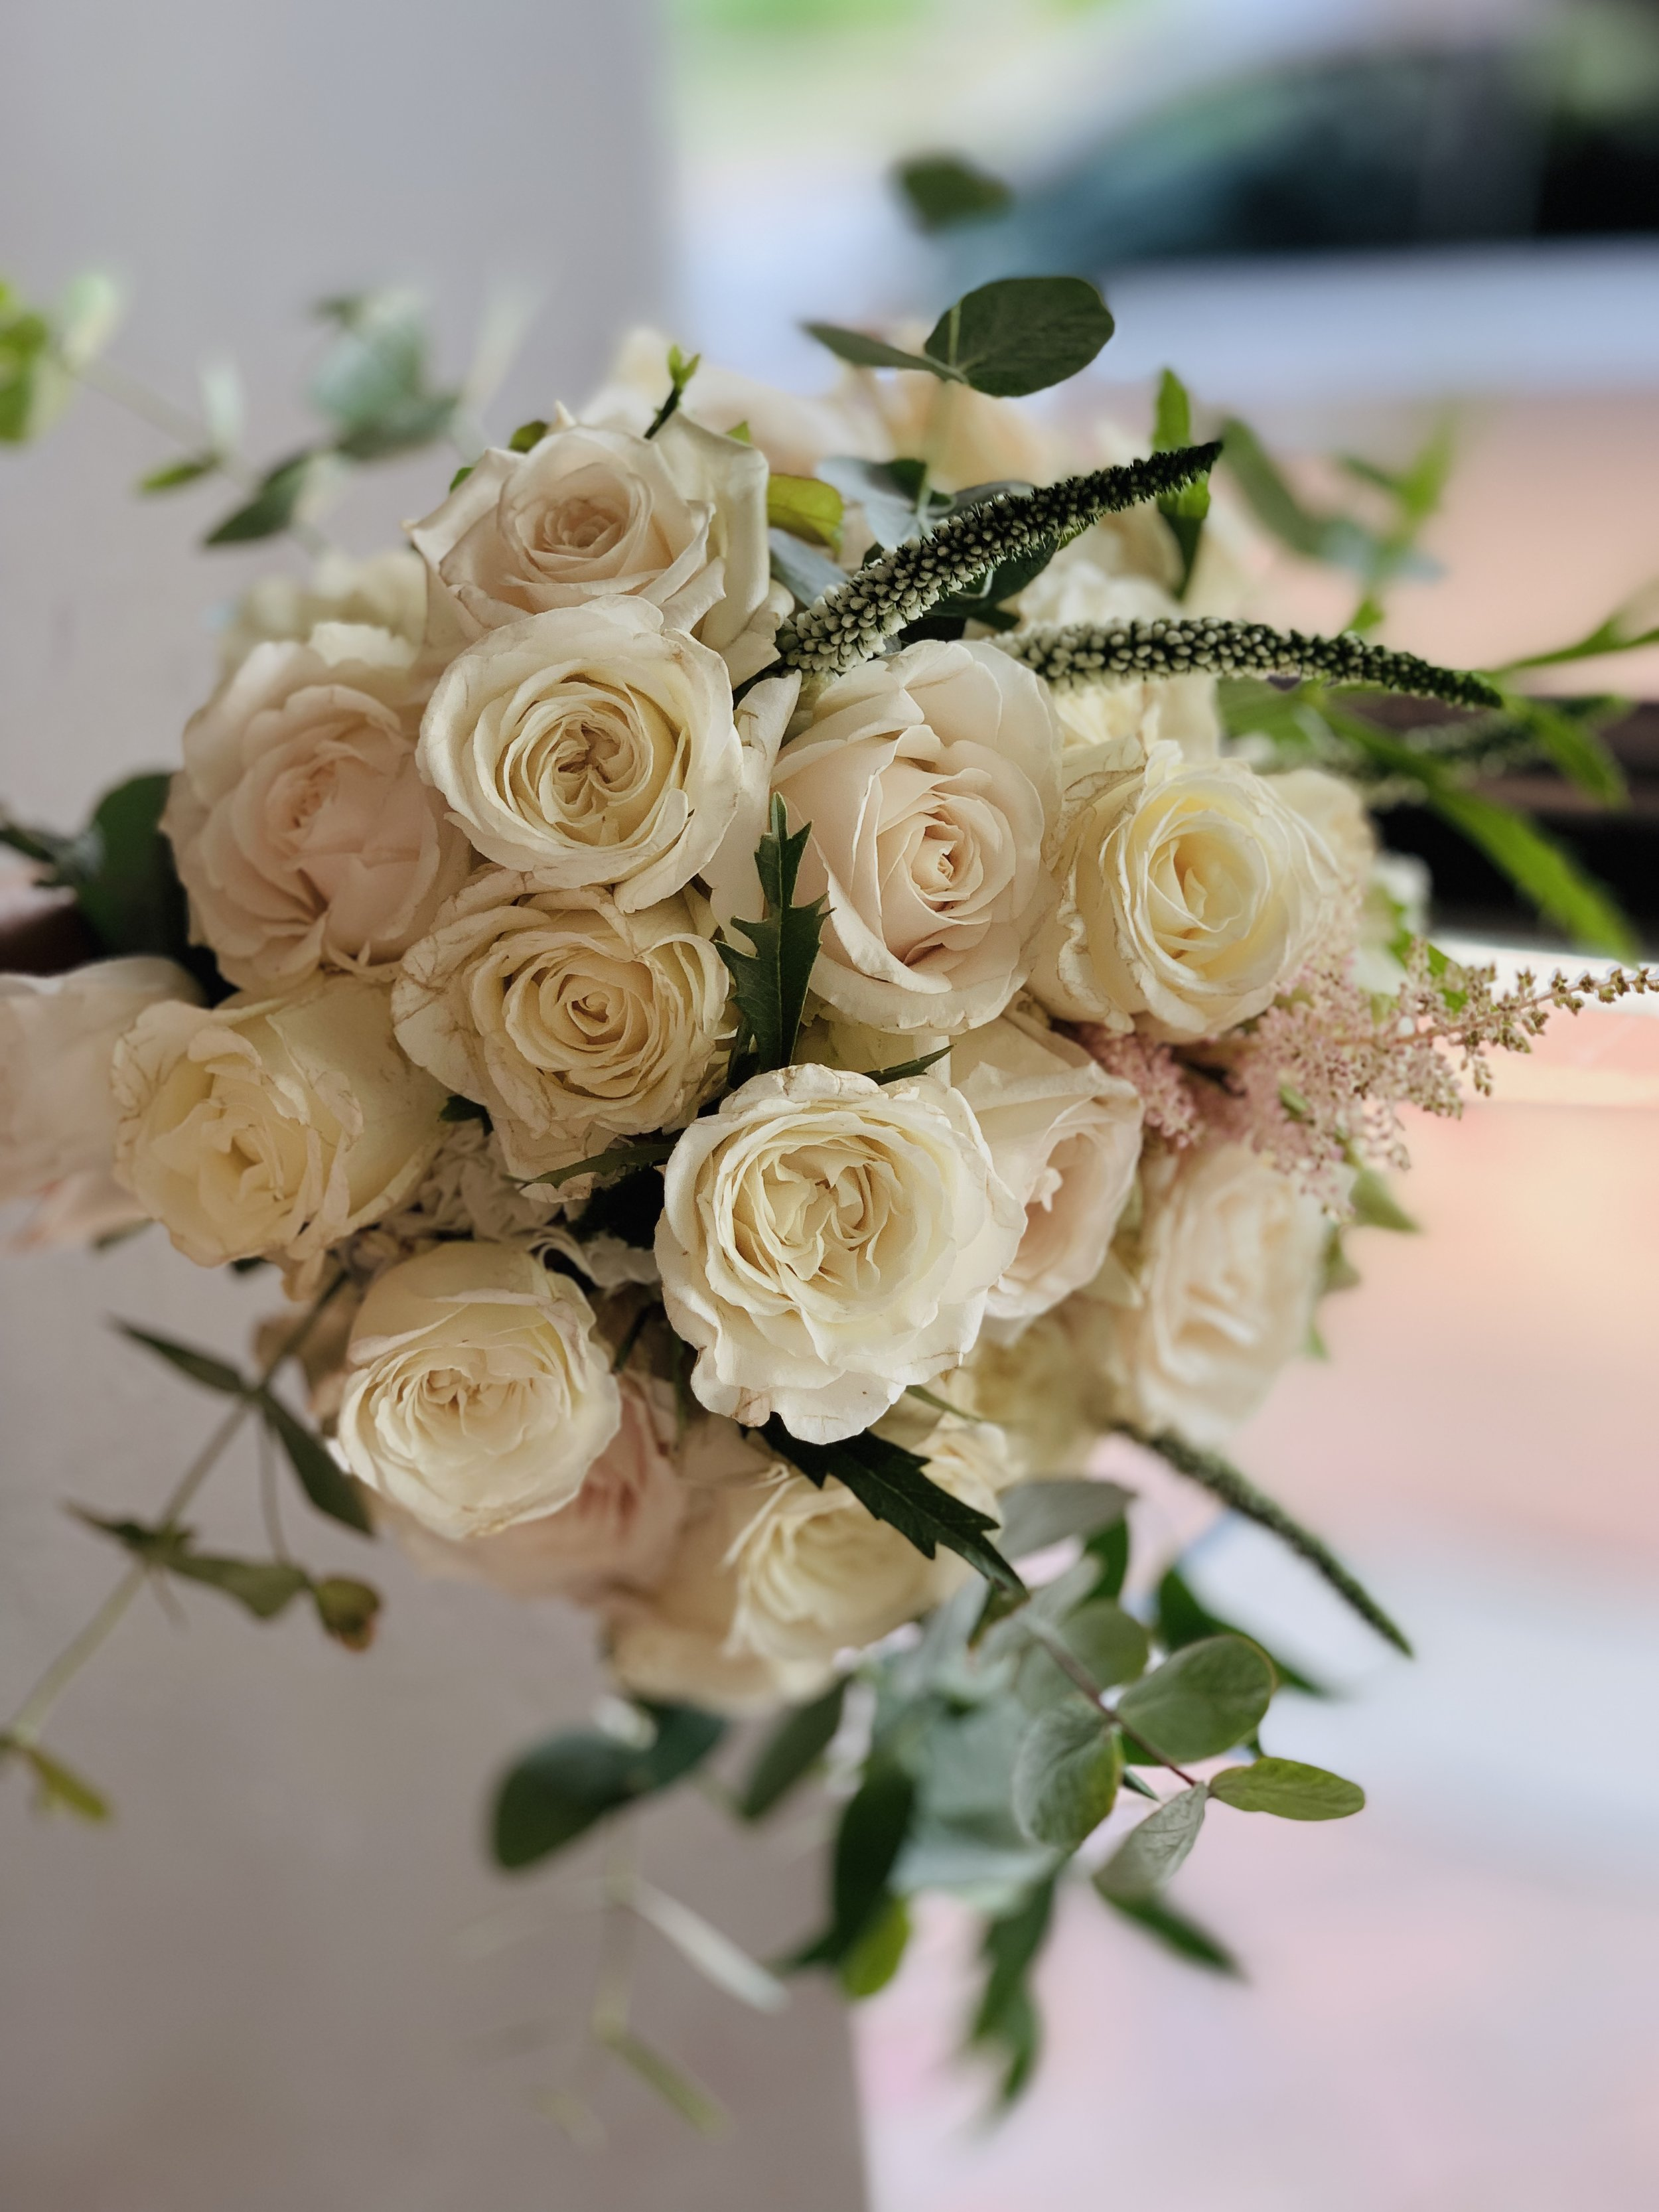 Stunning white and green bridal bouquet using soft gum foliage to form the edges.